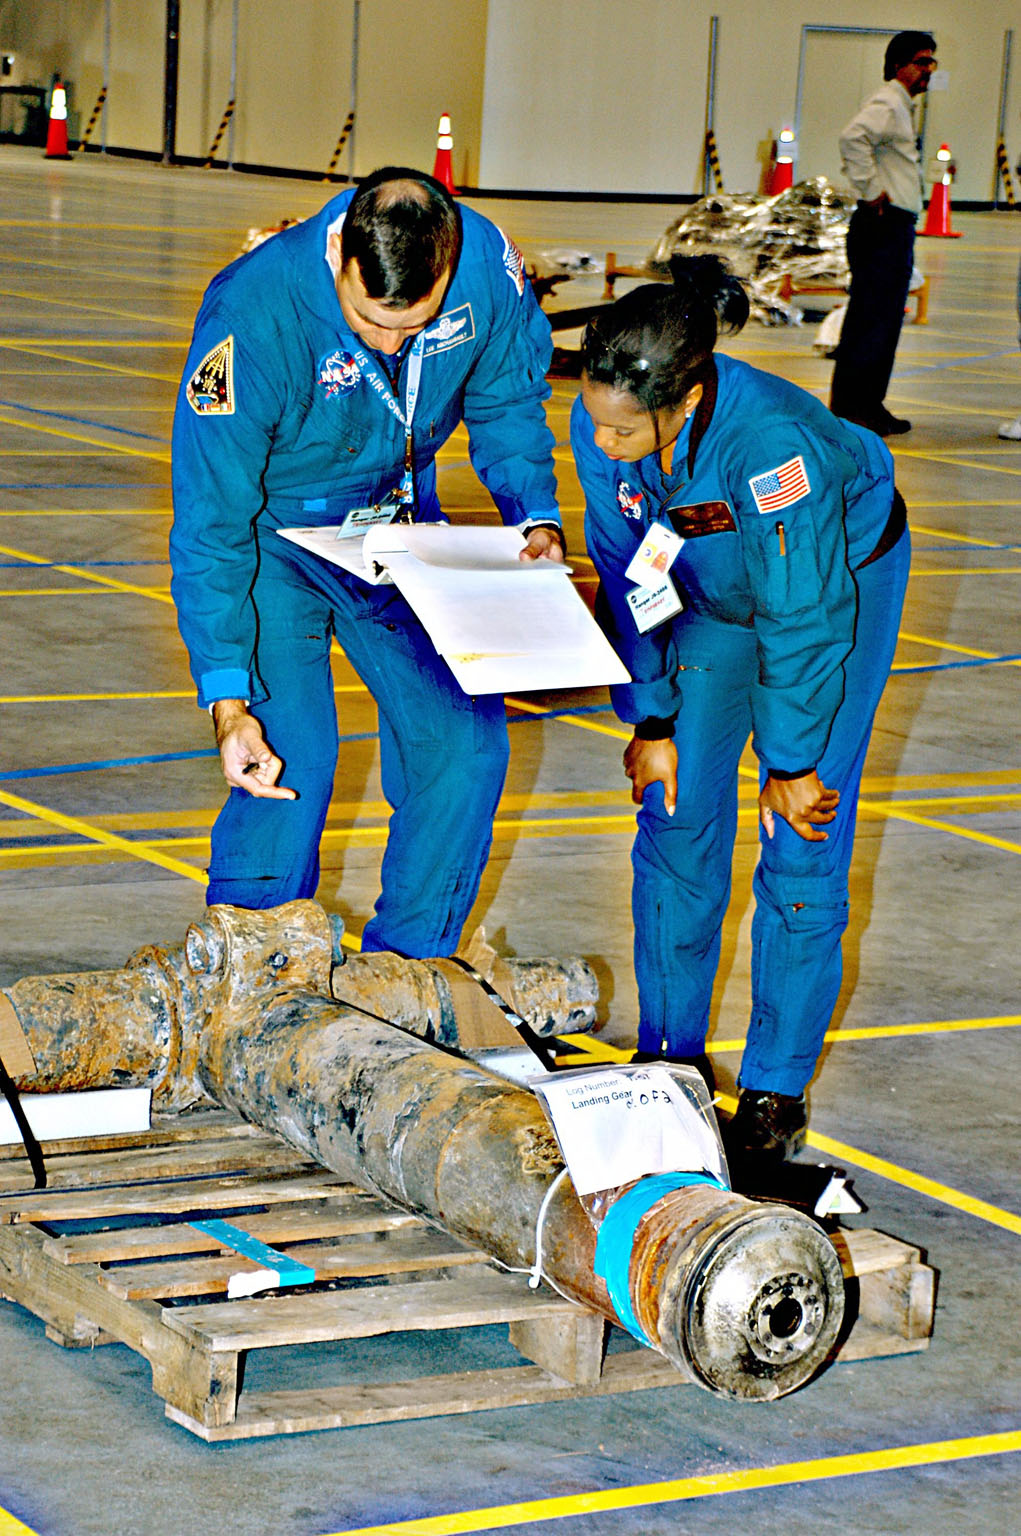 KENNEDY SPACE CENTER, FLA. -- Astronauts Lee Archambault and Joan Higginbotham look at a piece of Columbia debris placed on the grid in the RLV Hangar. The debris was shipped from Barksdale Air Force Base, Shreveport, La. As part of the ongoing investigation into the tragic accident, workers will attempt to reconstruct the orbiter inside the RLV.